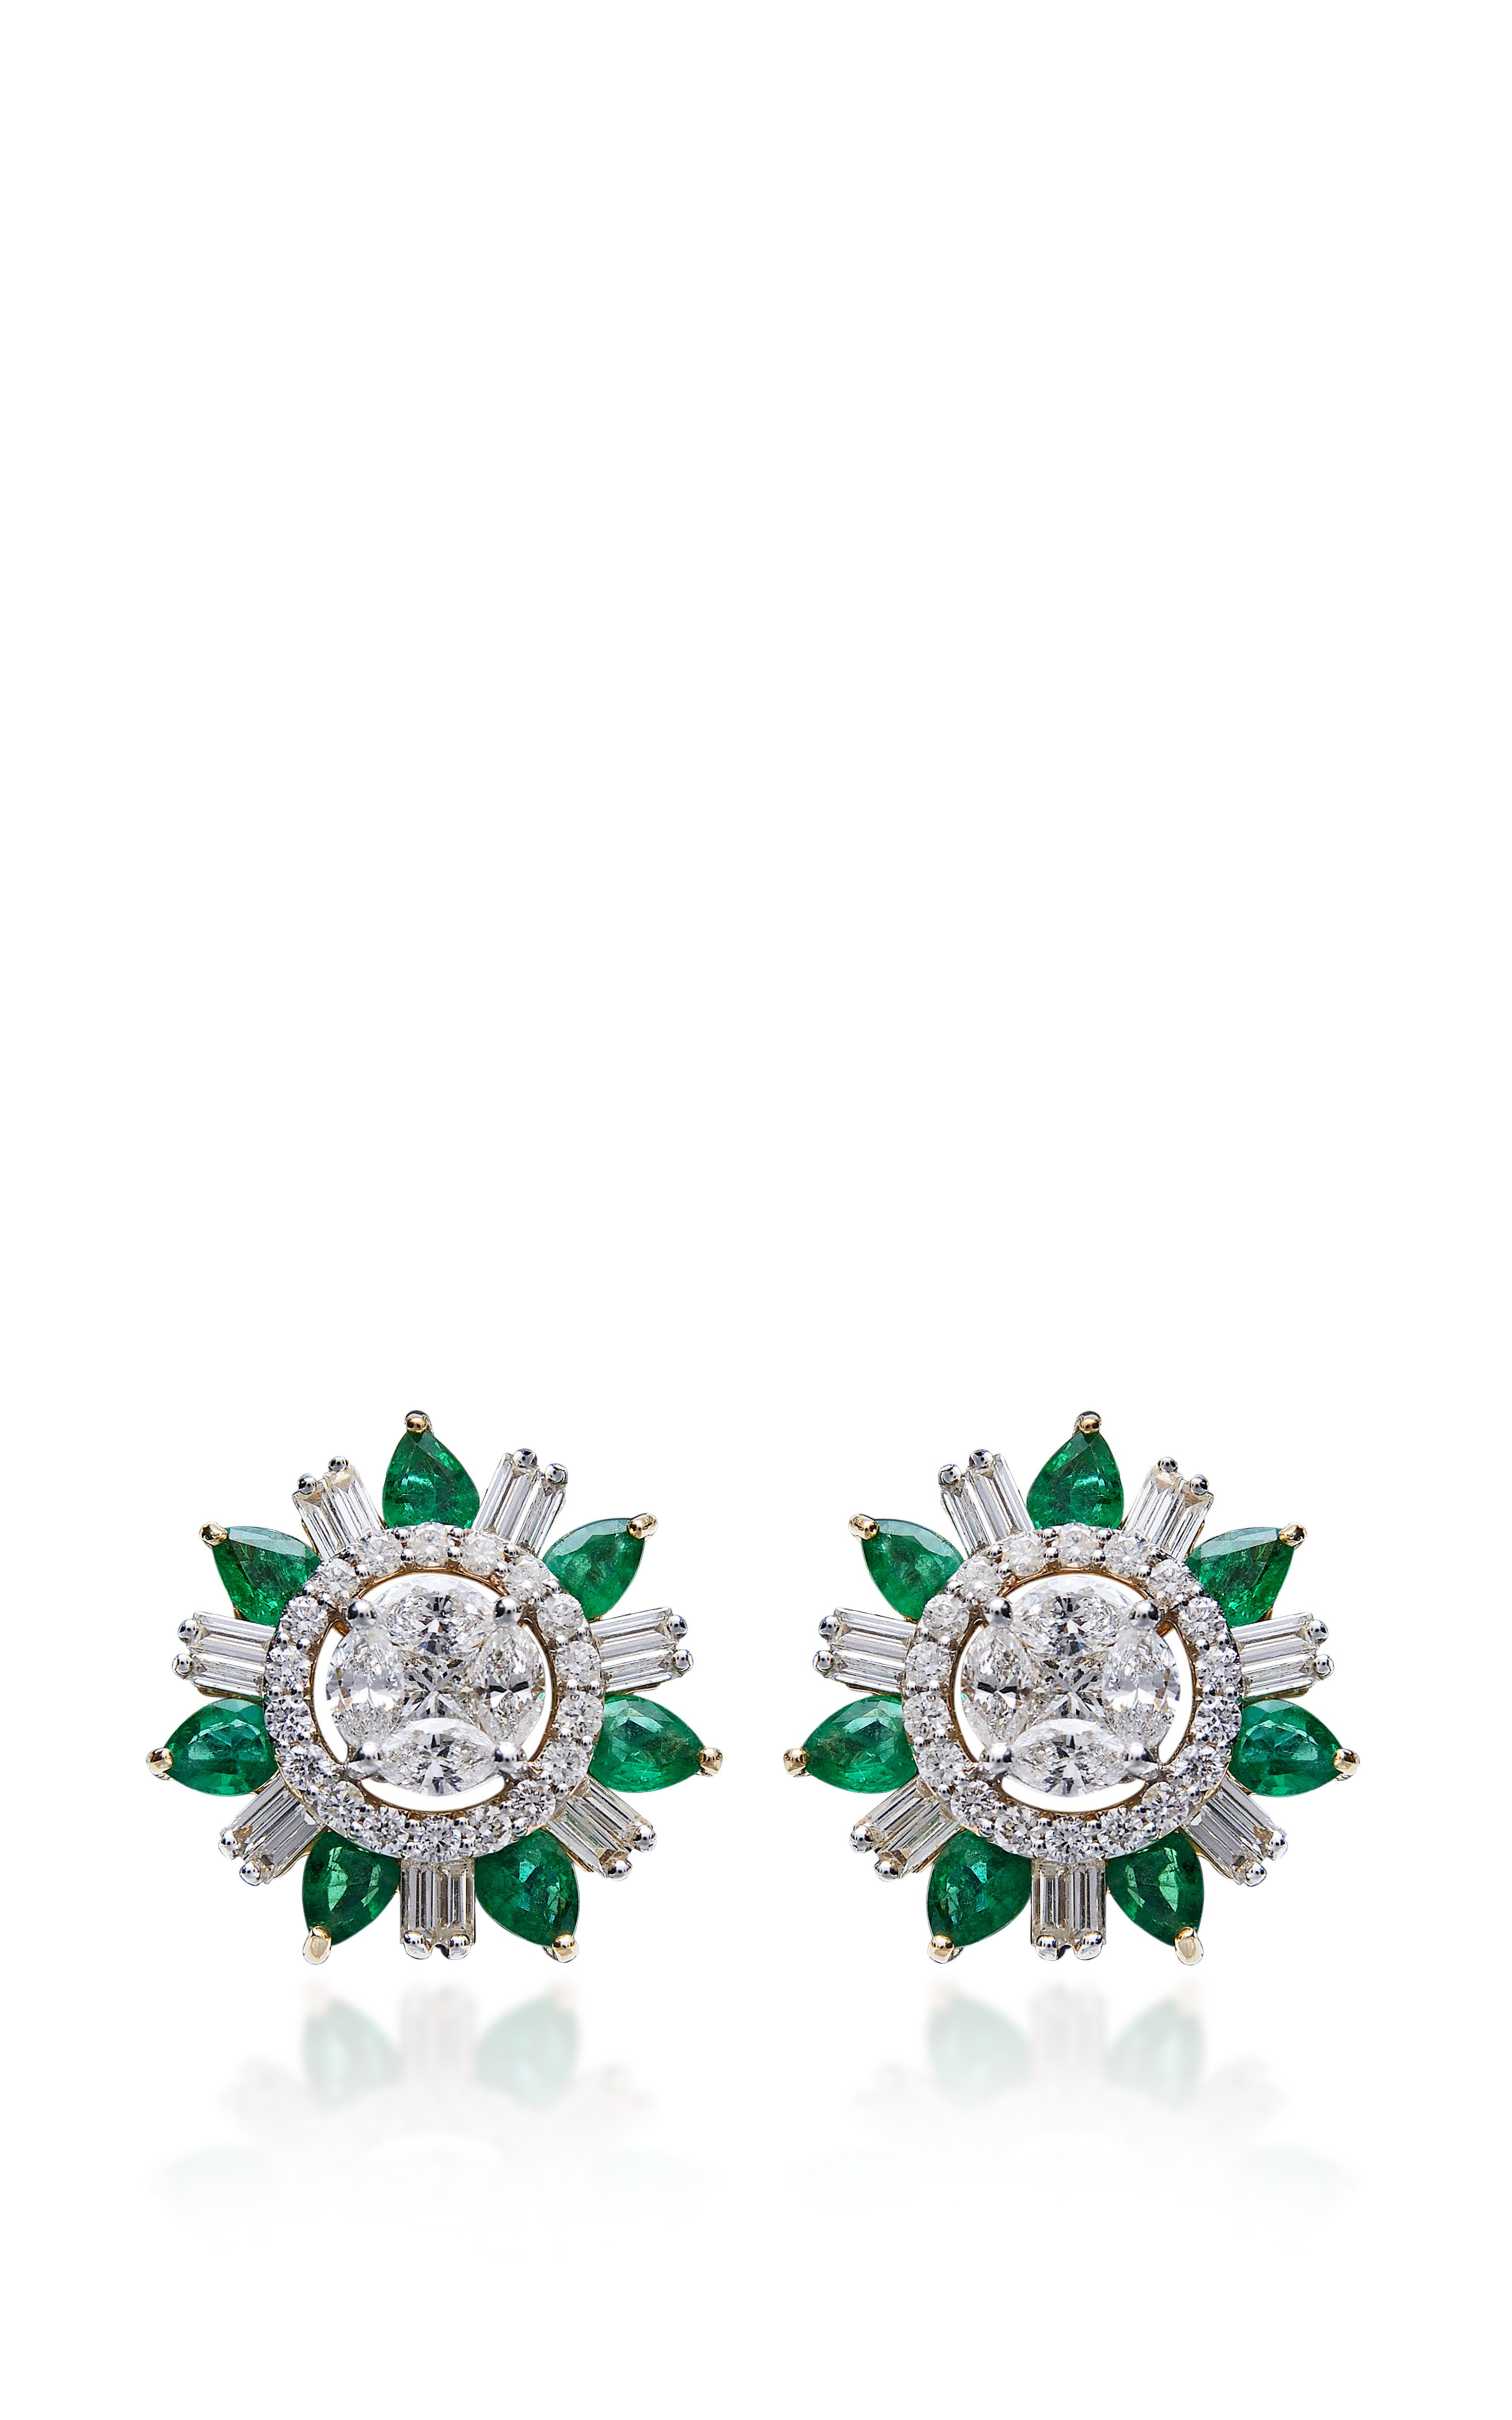 15 best images about Stud Earrings on Pinterest